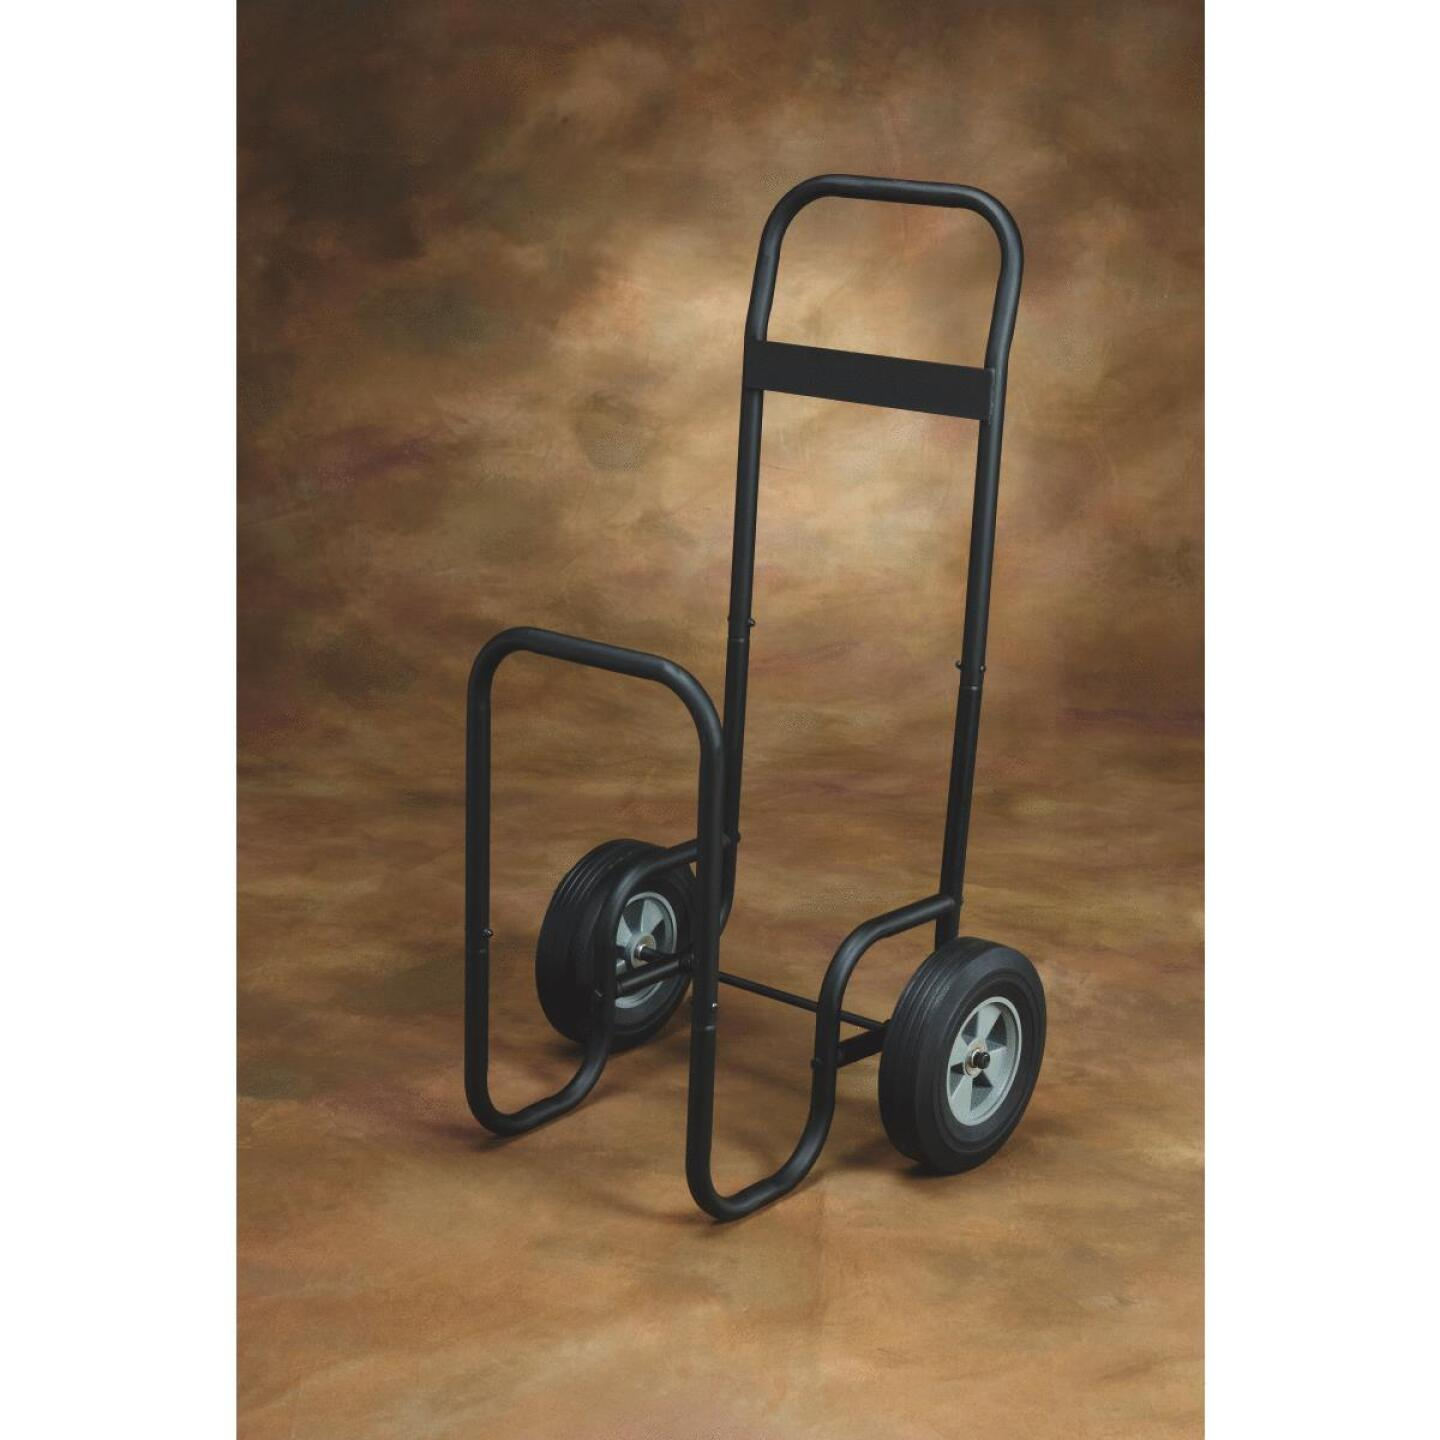 Home Impressions 21 In. W. x 40-1/2 In. H. Steel Log Cart Image 3